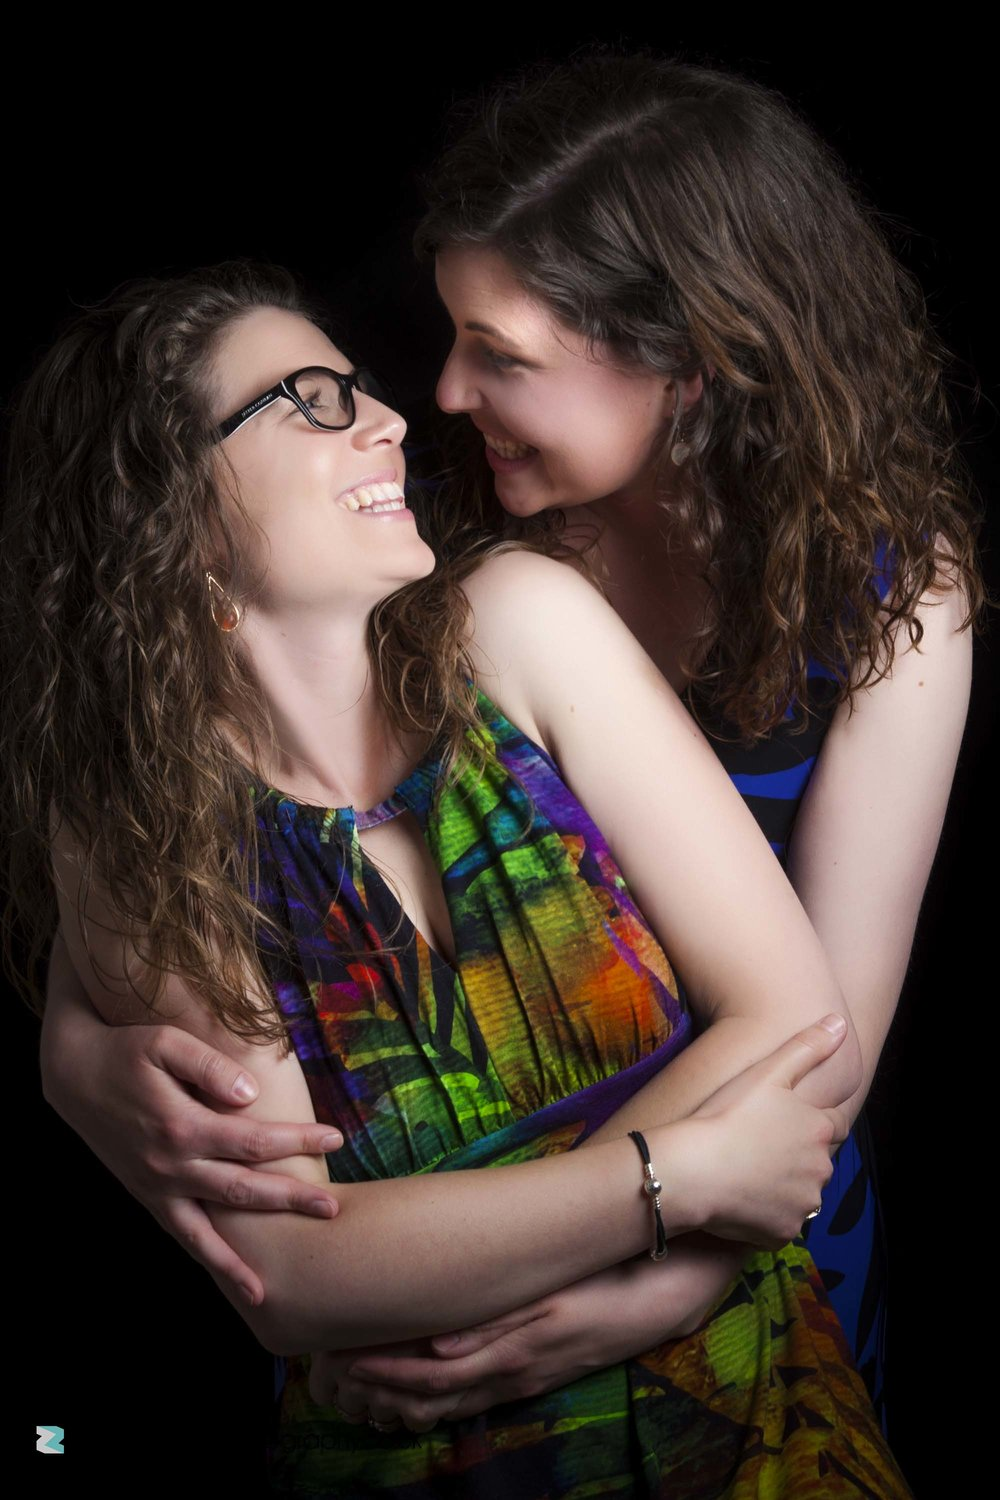 photography-session-leicester-photoshoot-session-zigzag-love-couple-romantic-happy-smile-curly-hair-glasses.jpg